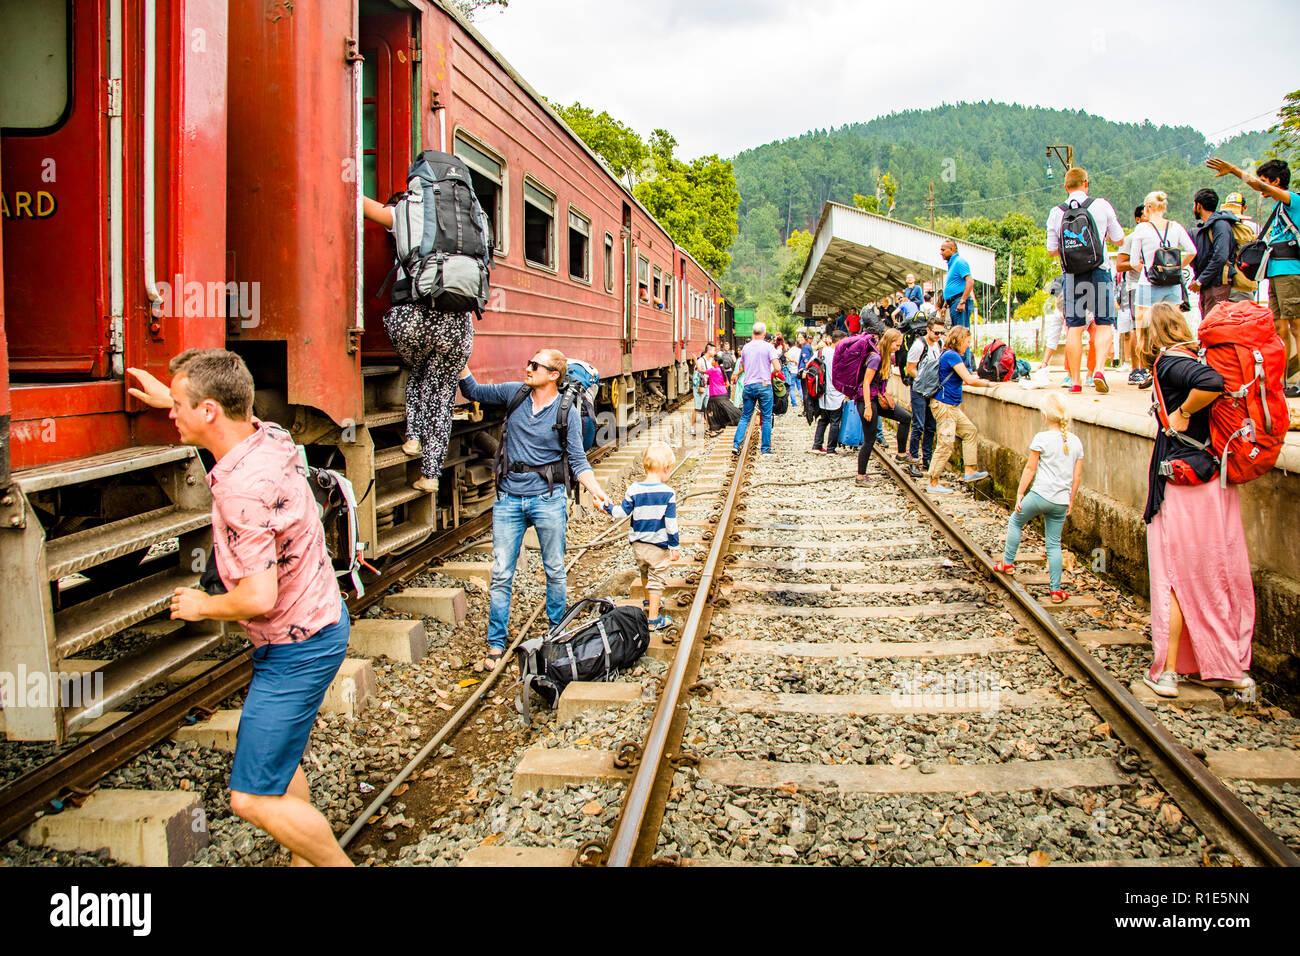 Plattform Confusion at Train station in Sri Lanka Stock Photo